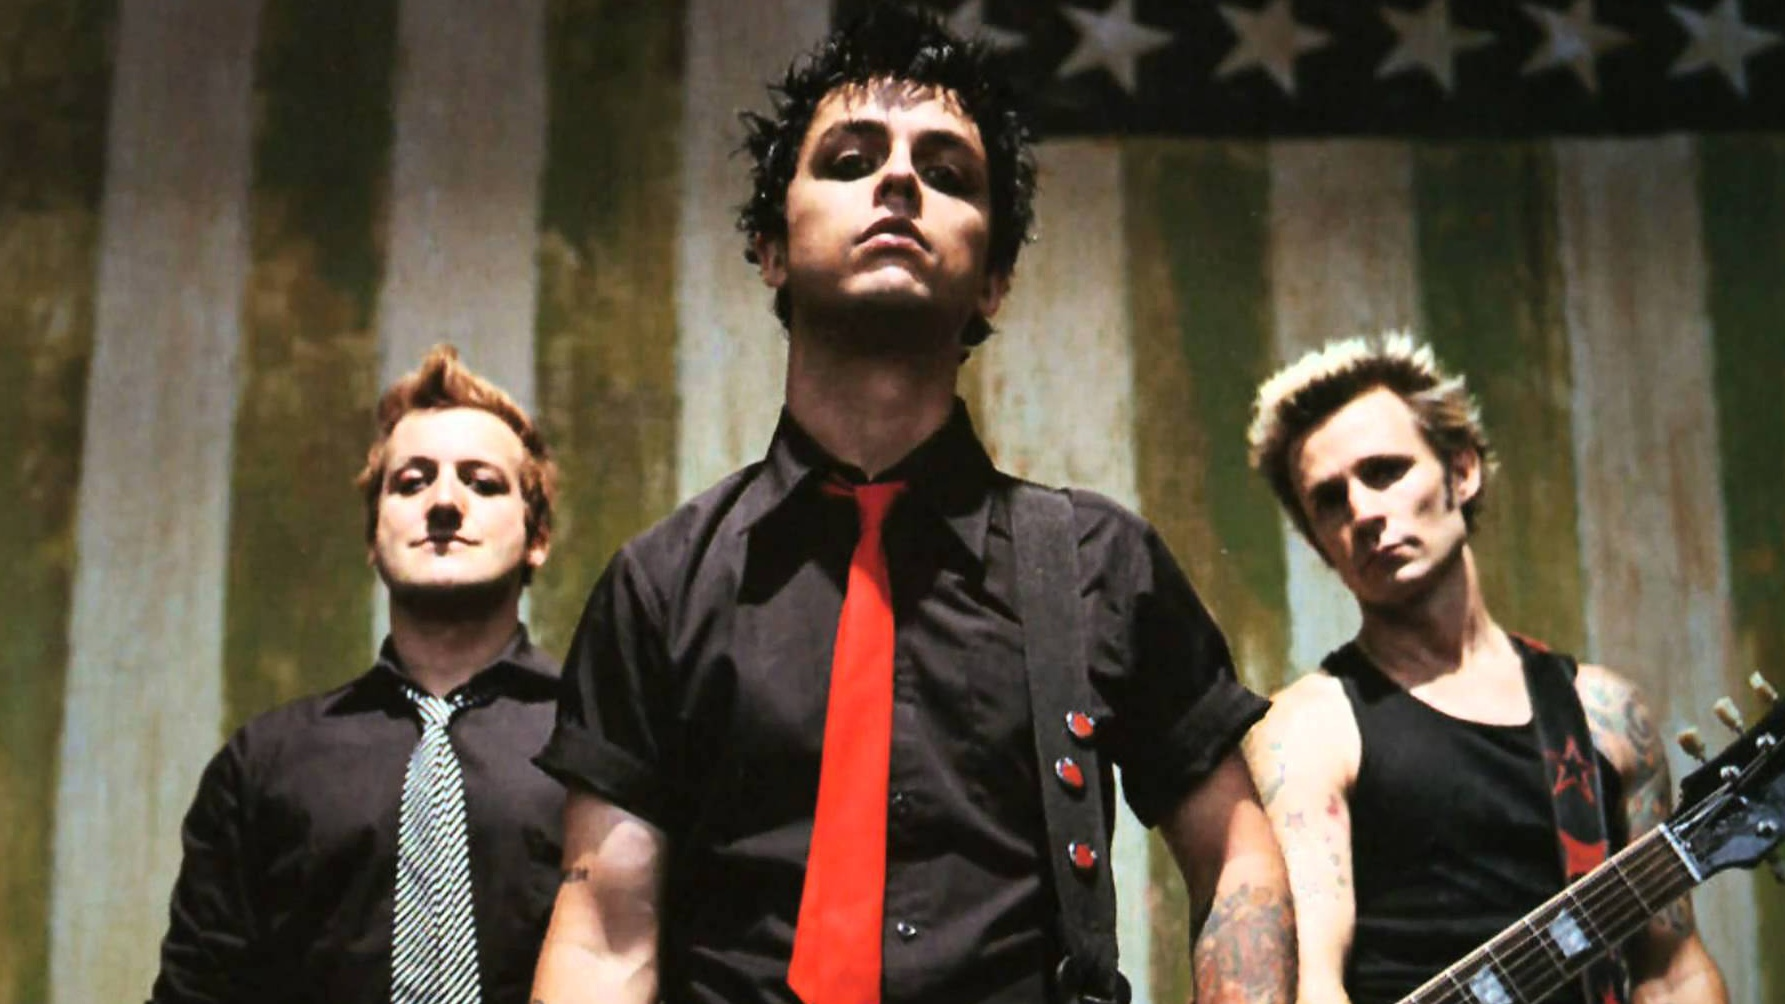 Albumism_GreenDay_MainImage.jpg